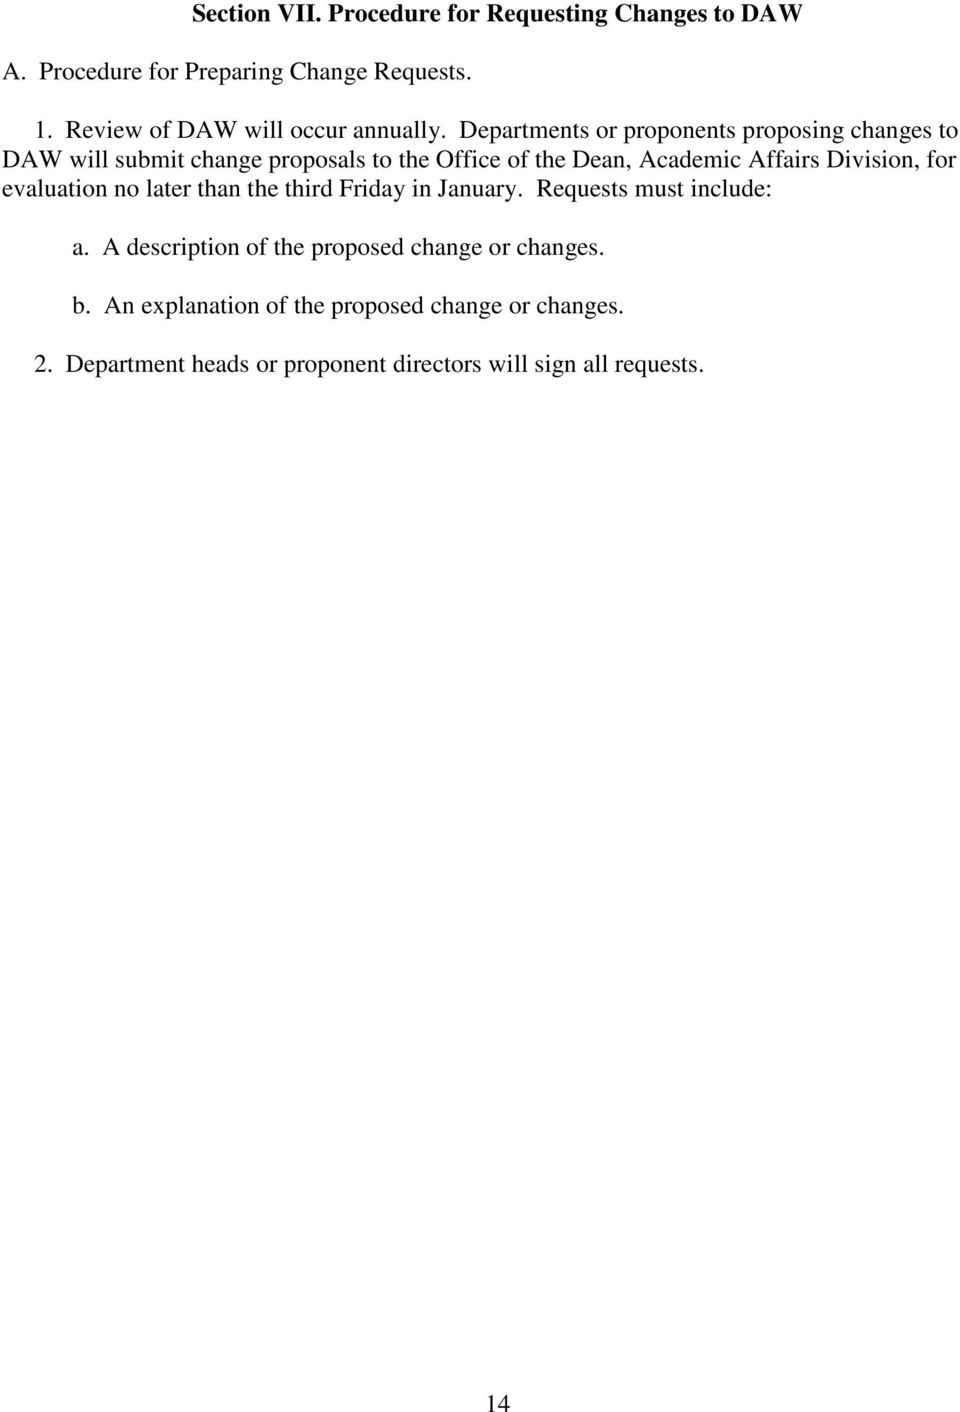 Departments or proponents proposing changes to DAW will submit change proposals to the Office of the Dean, Academic Affairs